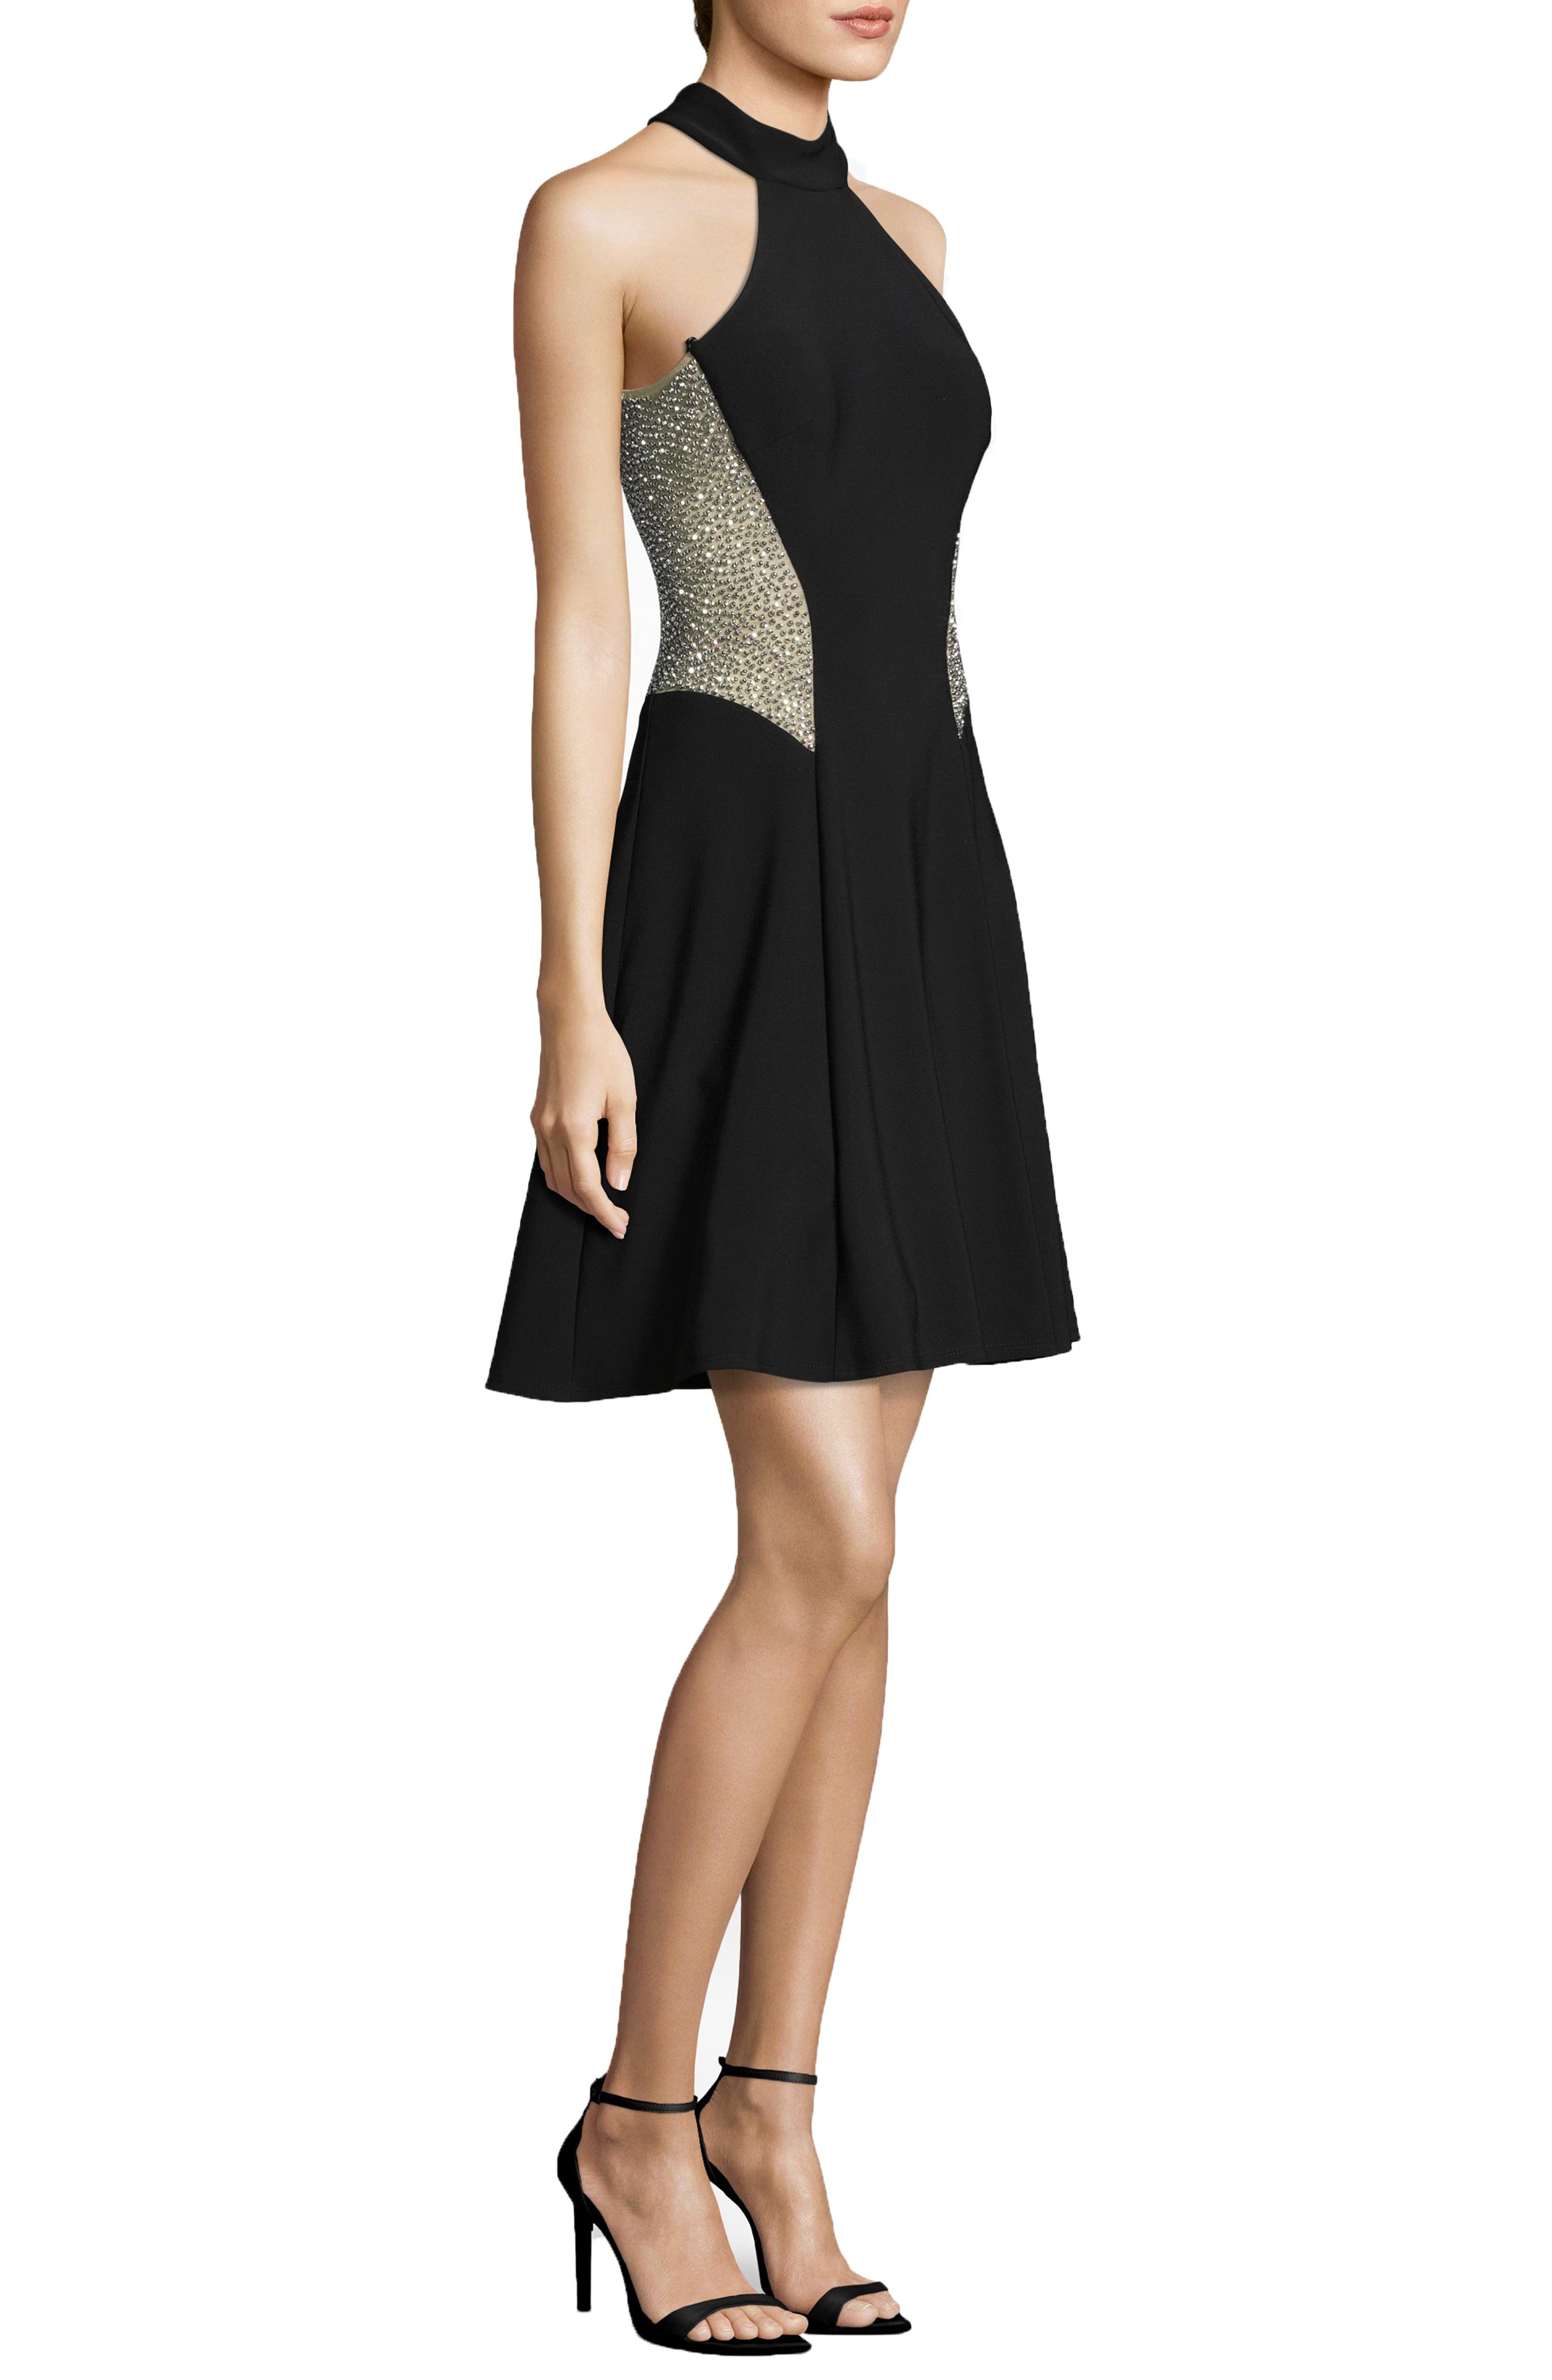 Beaded Back Cocktail Dress,                             Alternate thumbnail 3, color,                             BLACK/ NUDE/ SILVER